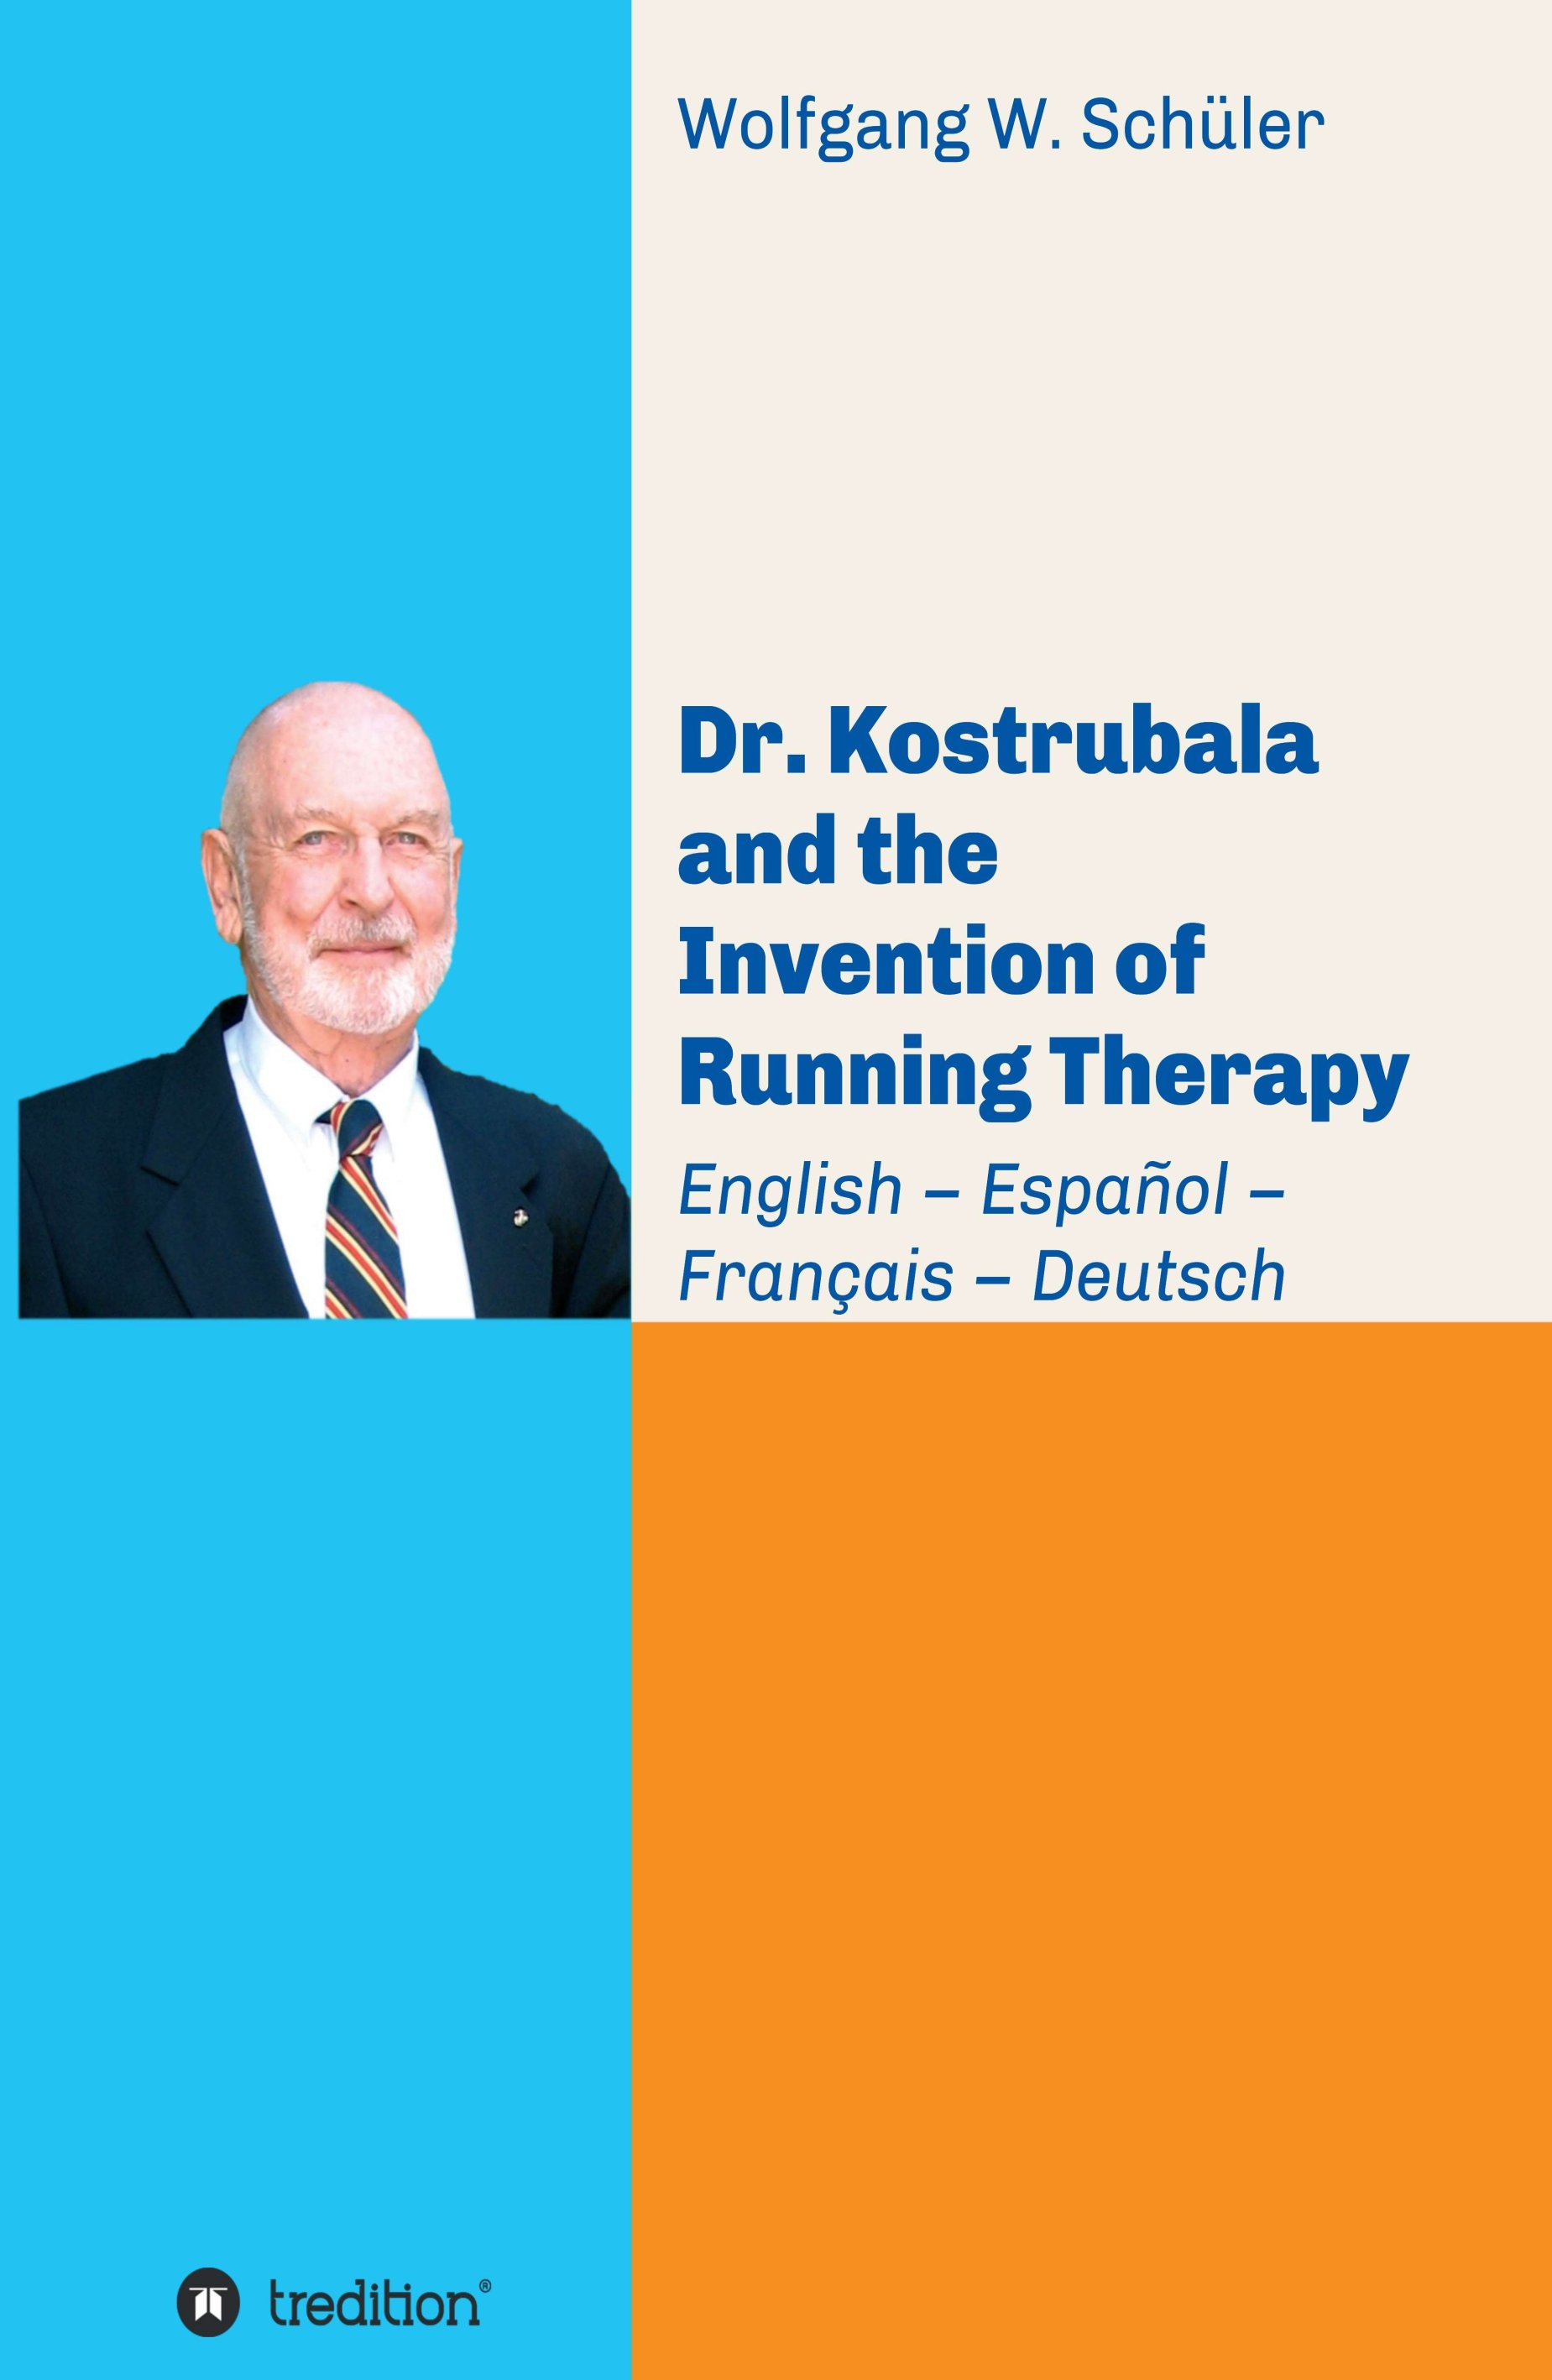 Dr. Kostrubala and the Invention of Running Therapy - Festschrift commemorating the 90th birthday of inventor of running therapy